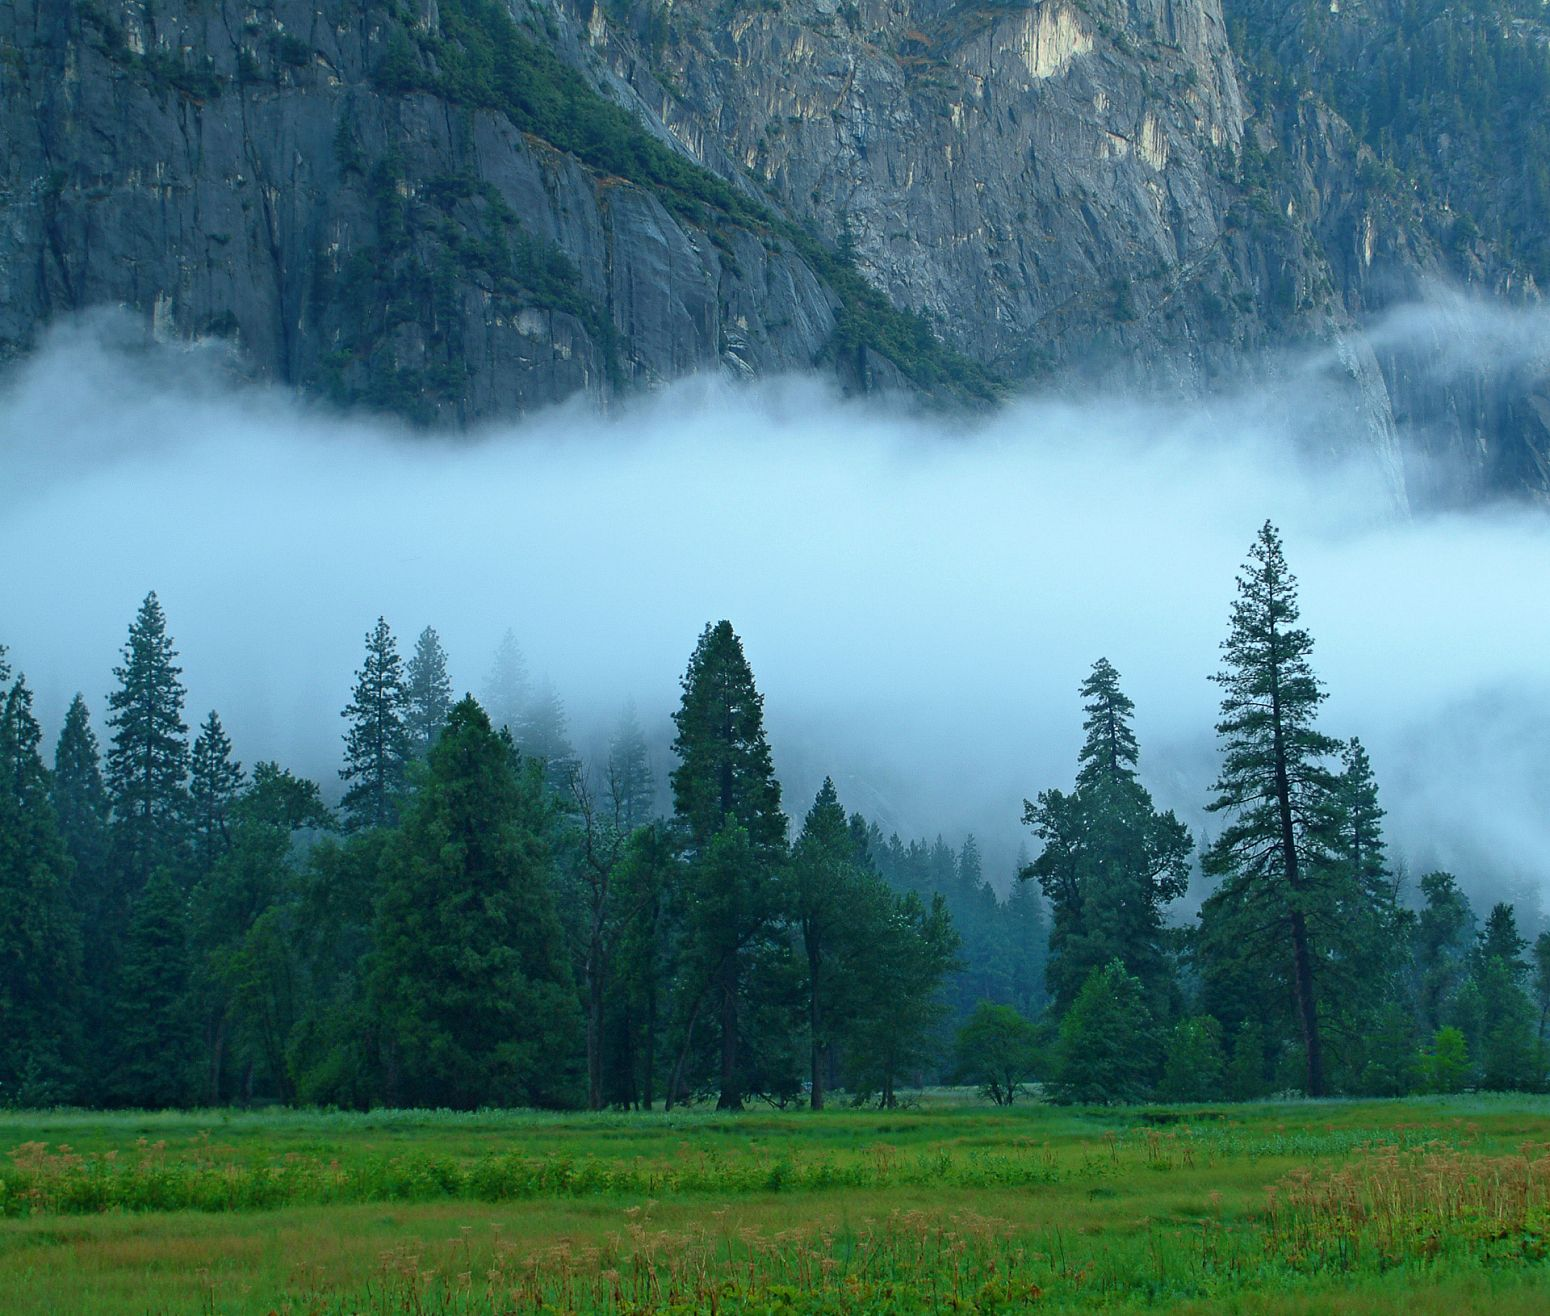 Low clouds after some heavy rain, Yosemite NP, California, USA